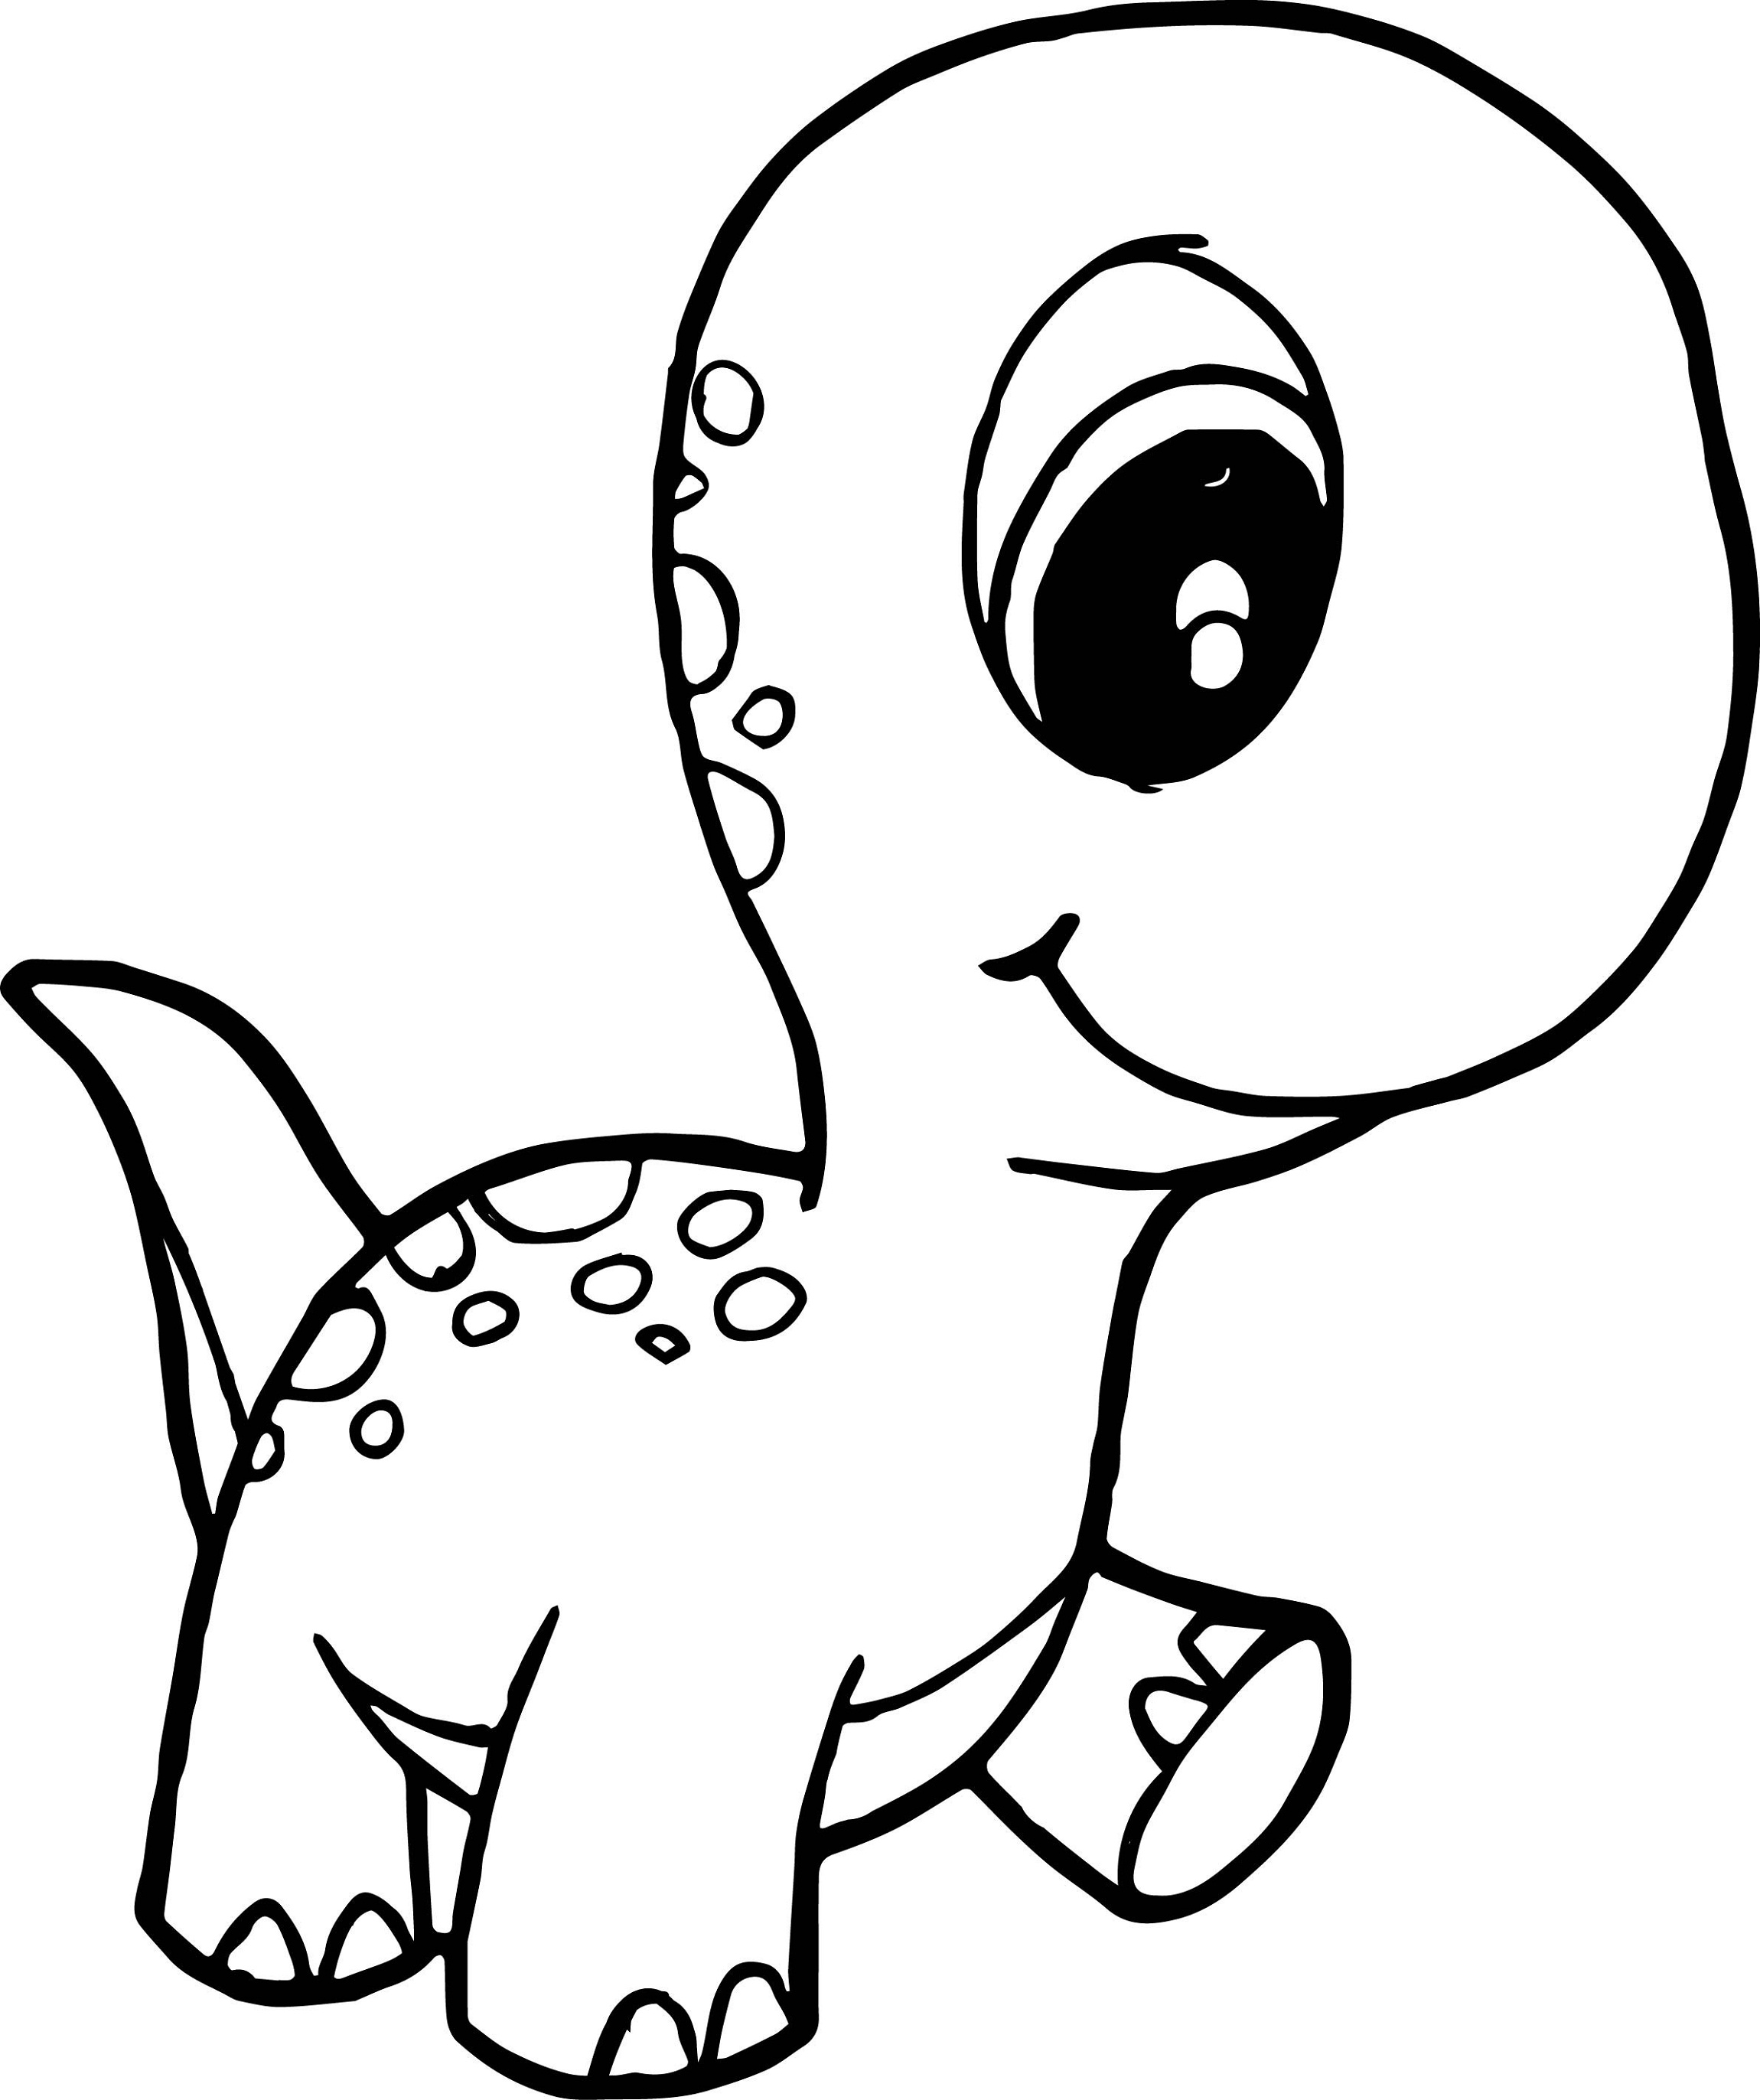 baby dinosaur coloring page baby dinosaur coloring pages to download and print for free coloring page dinosaur baby